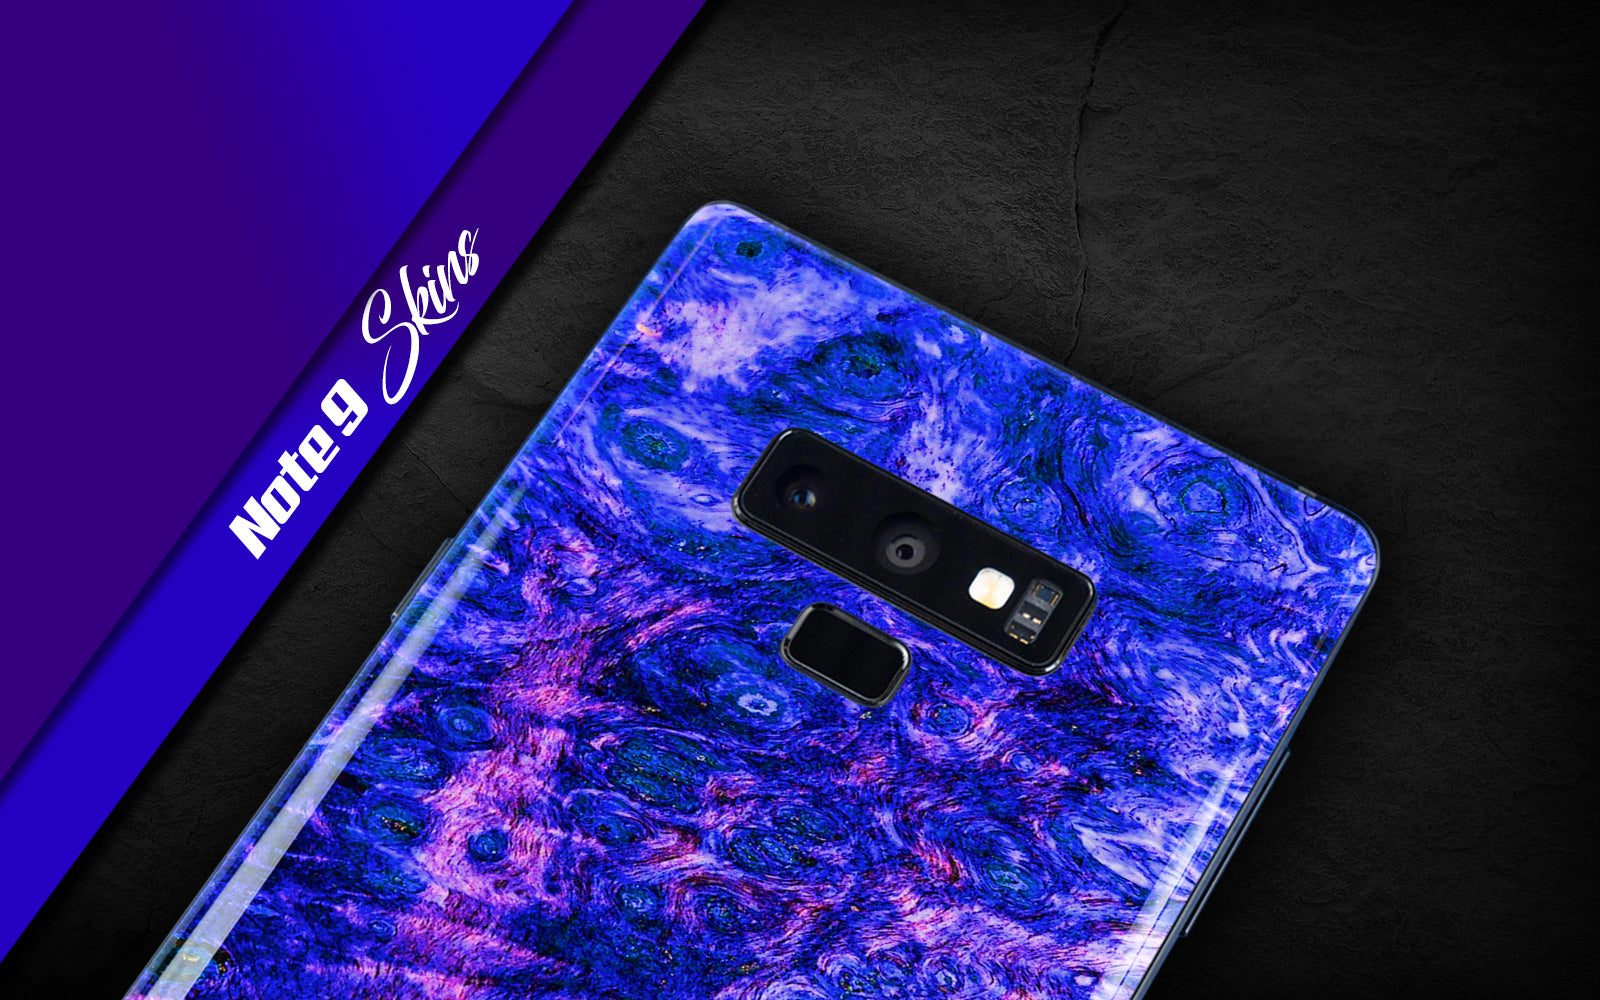 Samsung Galaxy Note 9 decorative mobile phone skins, phone wraps.  Create your own Note 9 skin online.  New unique custom decals and styles for your Galaxy Note 9.